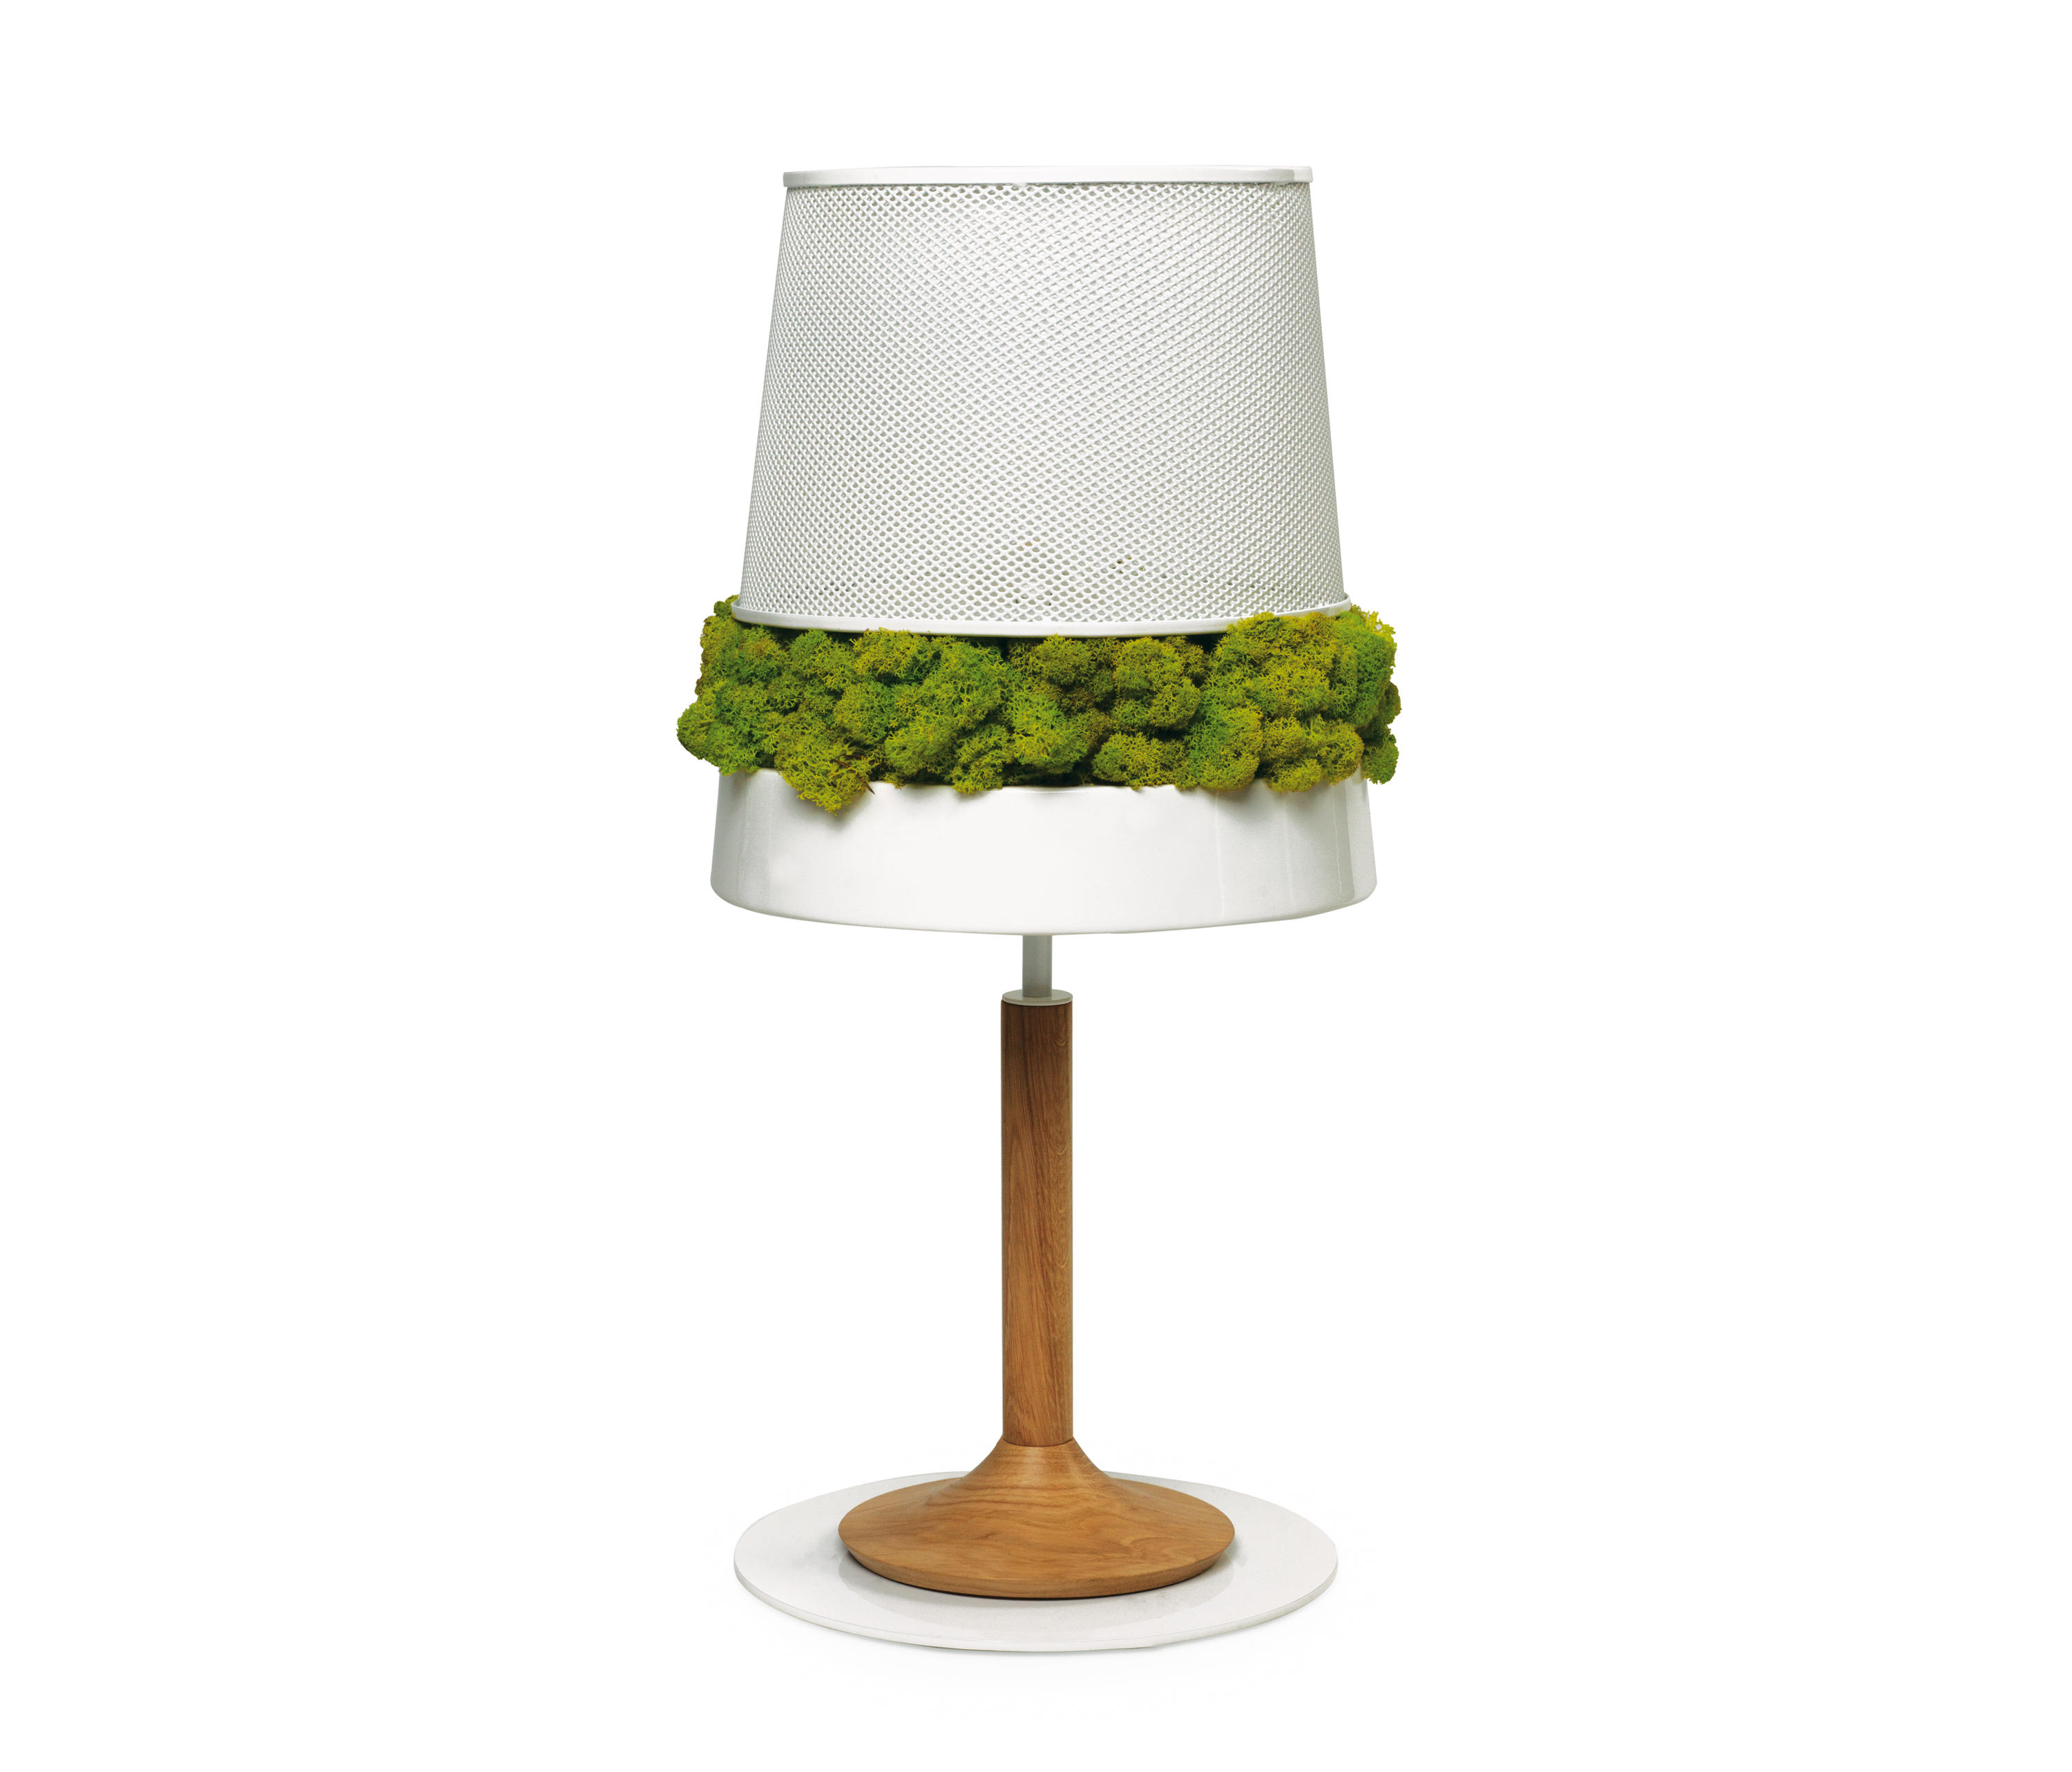 Moss Table l& by Verde Profilo   Table lights  sc 1 st  Architonic & MOSS TABLE LAMP - Table lights from Verde Profilo   Architonic